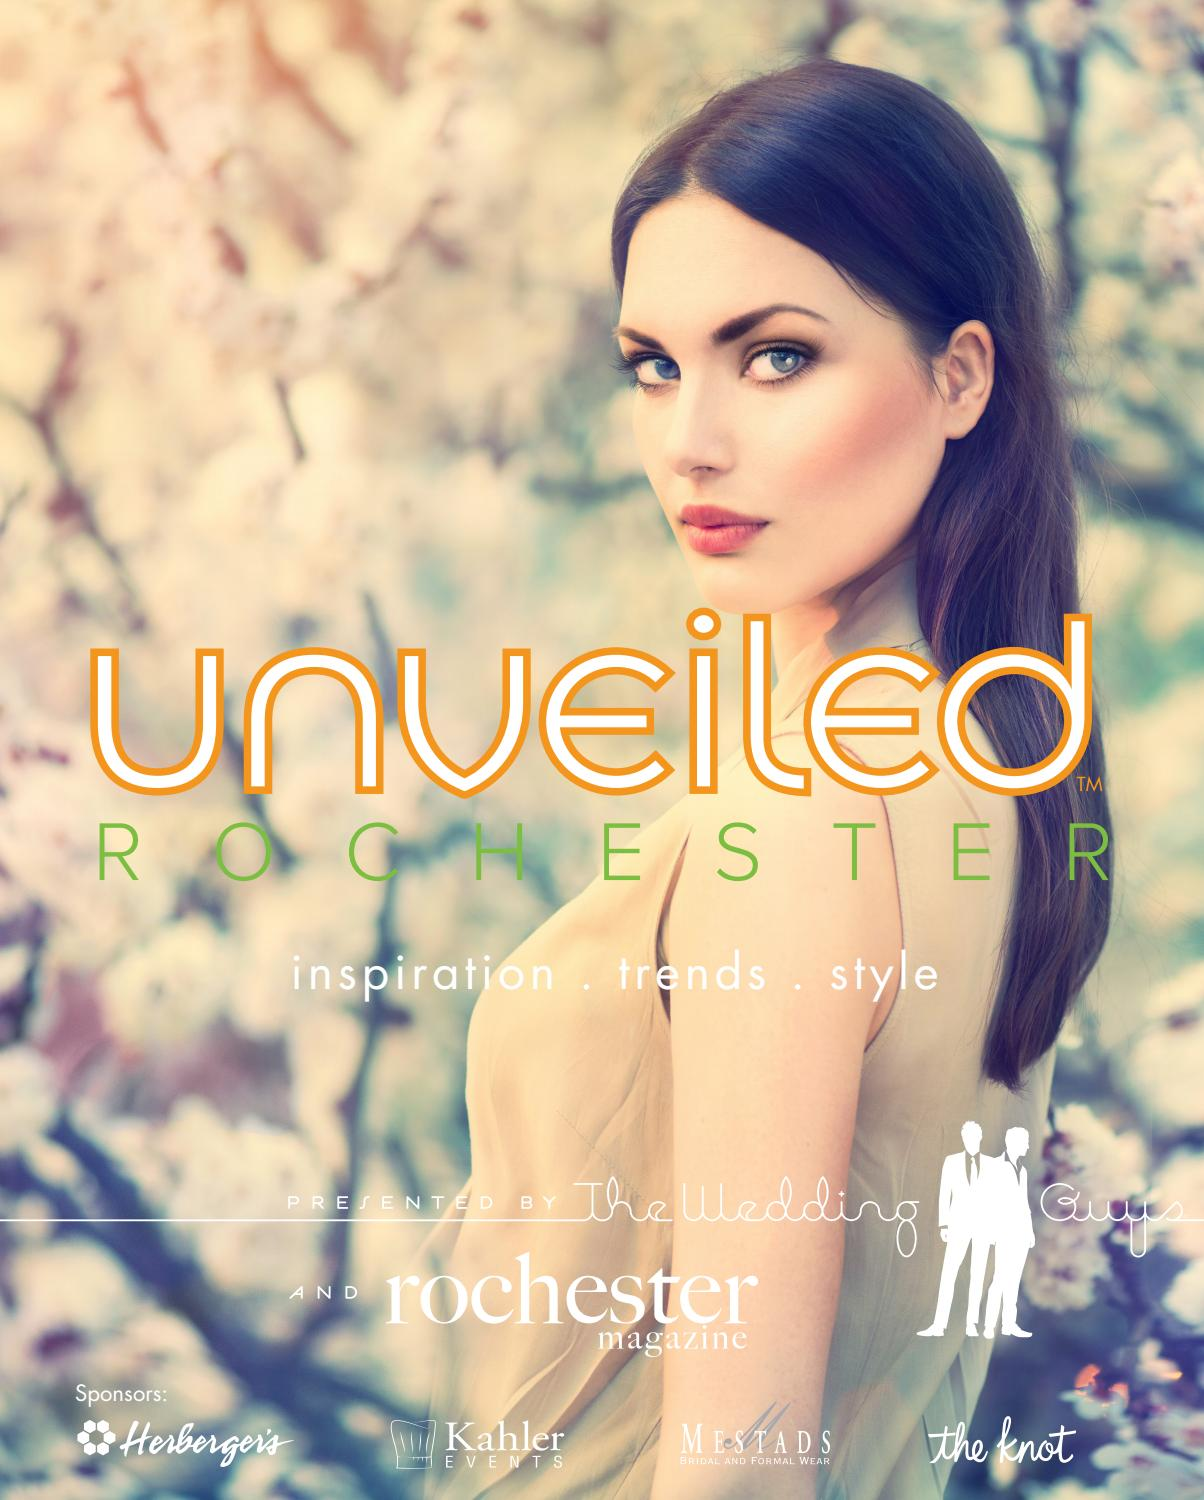 Unveiled Rochester Program October 2017 By The Wedding Guys Issuu